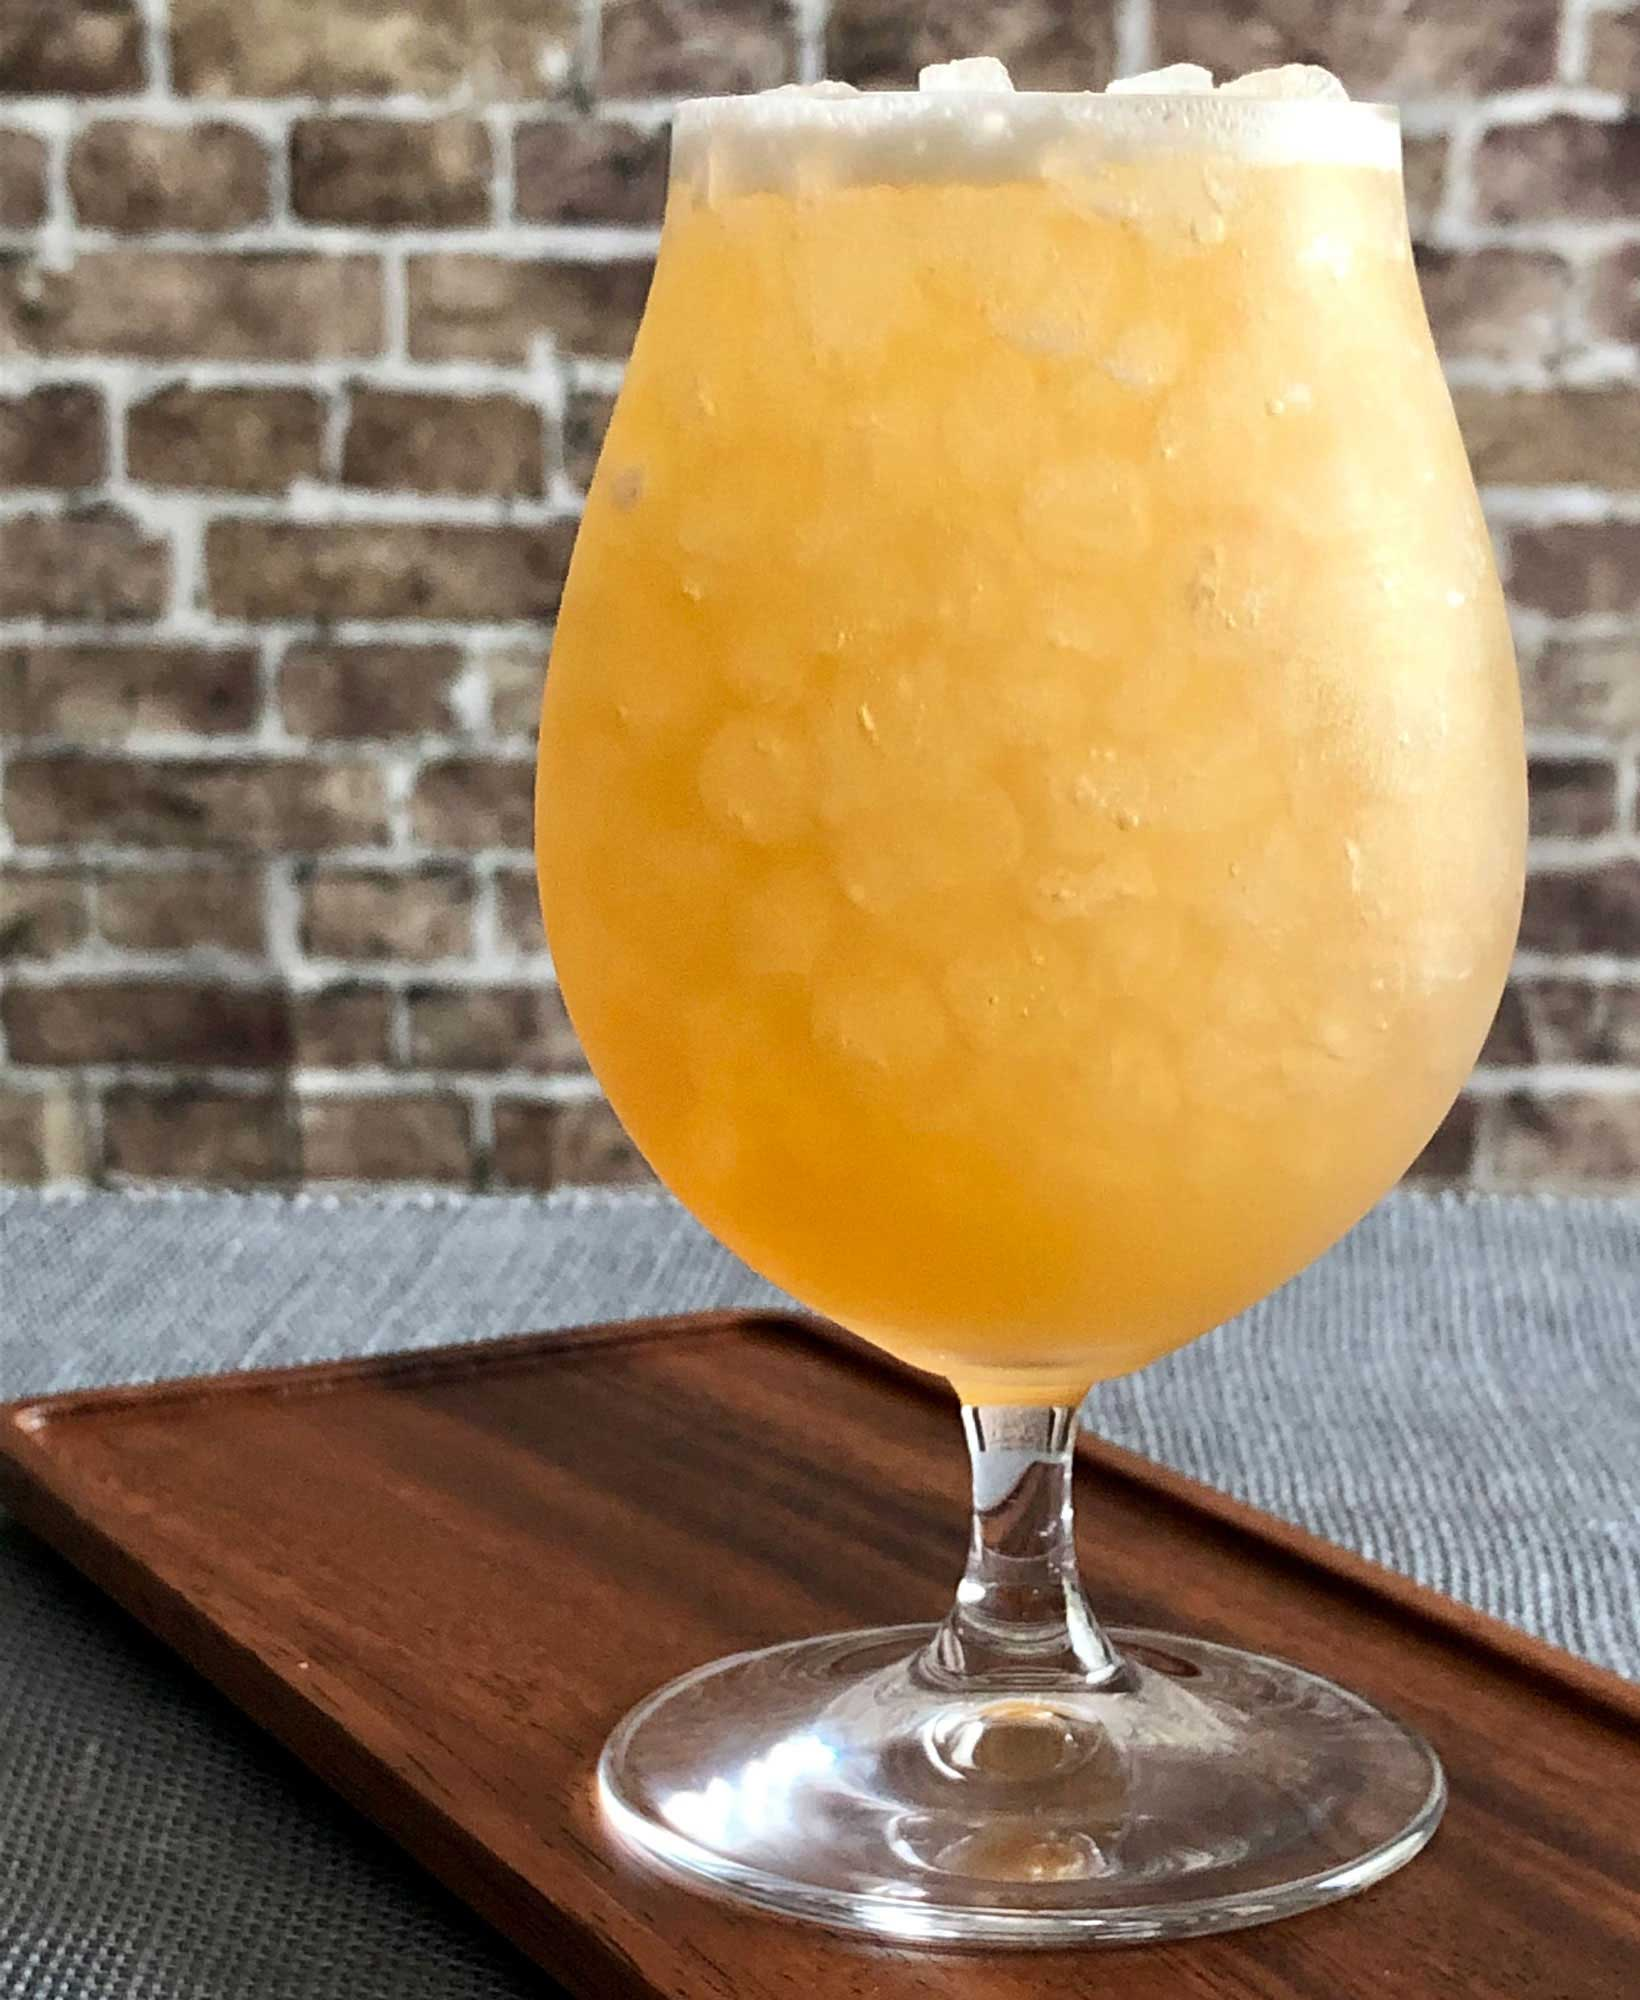 An example of the Sawbuck, the mixed drink (cocktail), by Kirkland Tap & Trotter, Cambridge, MA, featuring india pale ale, rye whiskey, cinnamon-infused sugar syrup, lemon juice, and Nux Alpina Walnut Liqueur; photo by Lee Edwards